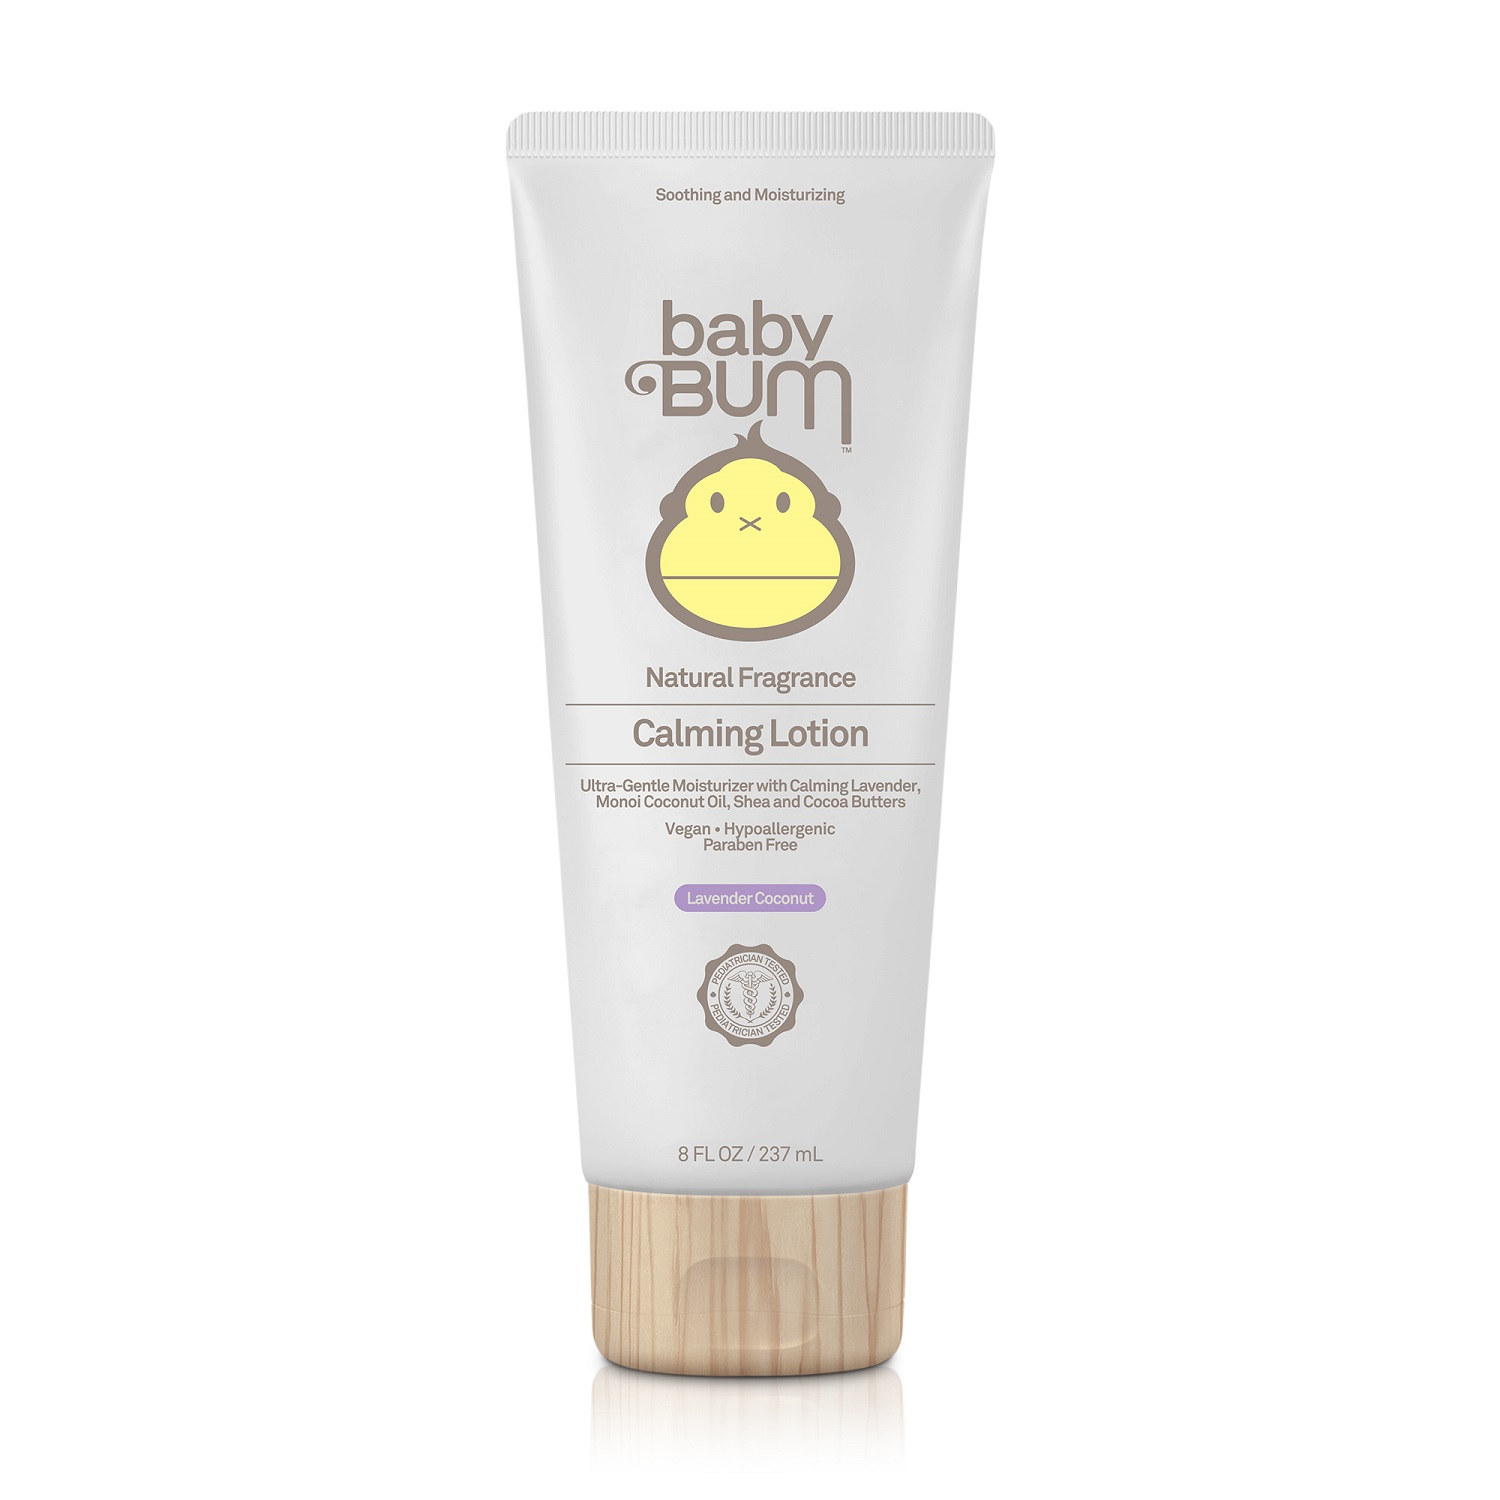 Sun Bum baby Bum Soothing and Moisturizing Calming Lotion [Natural Fragrance] (8.0 fl oz / 237 ml)